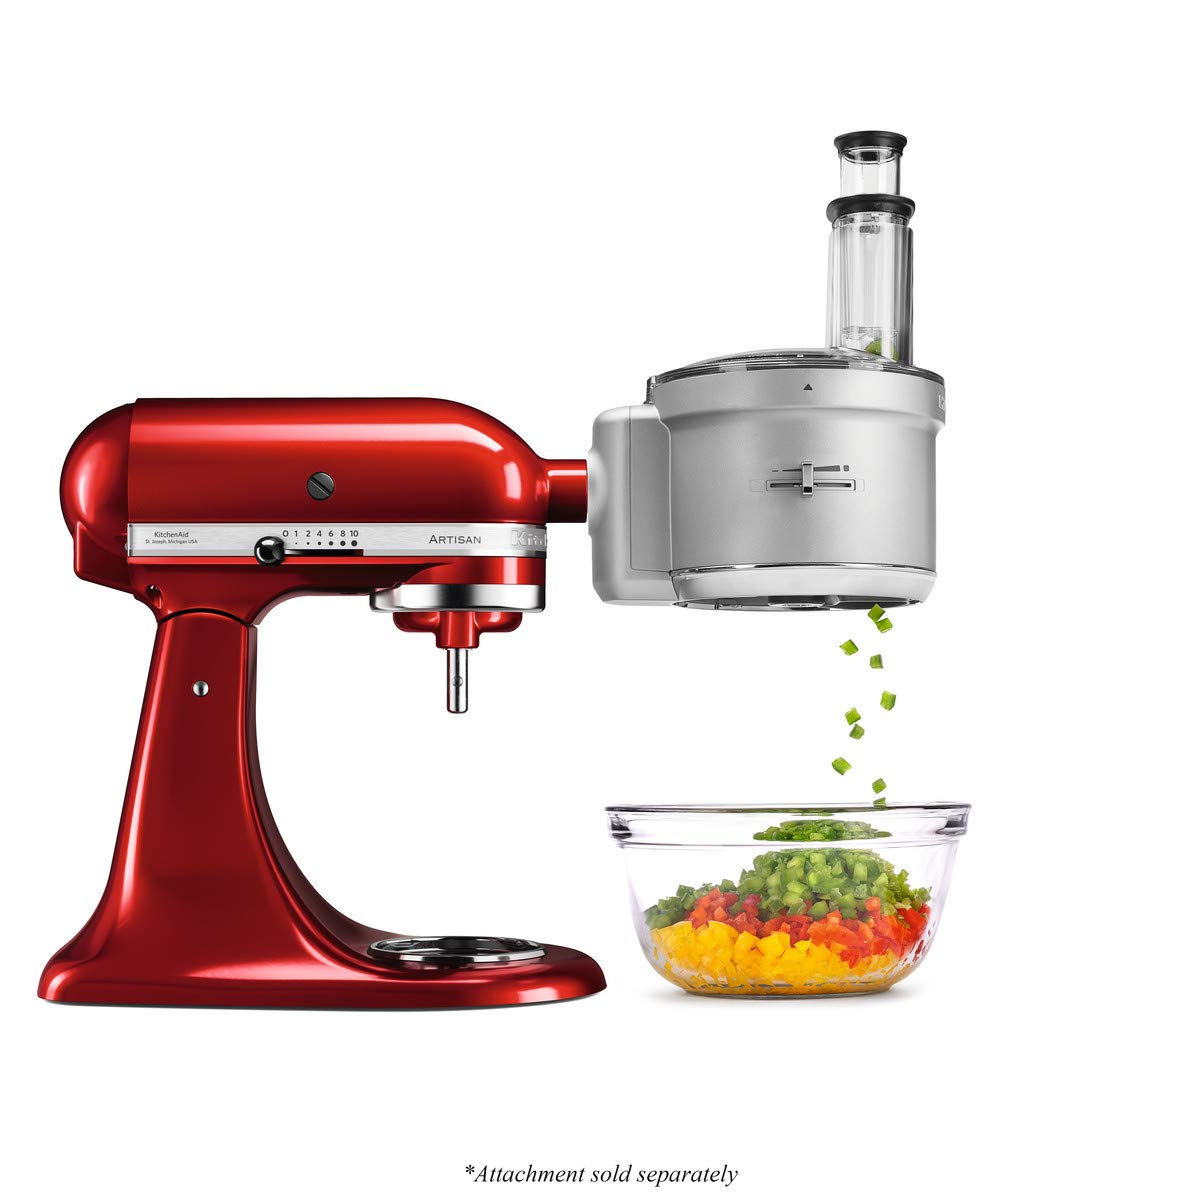 KitchenAid 5KSM2FPA Food Processor Attachment (Optional Accessory for KitchenAid Stand Mixers)